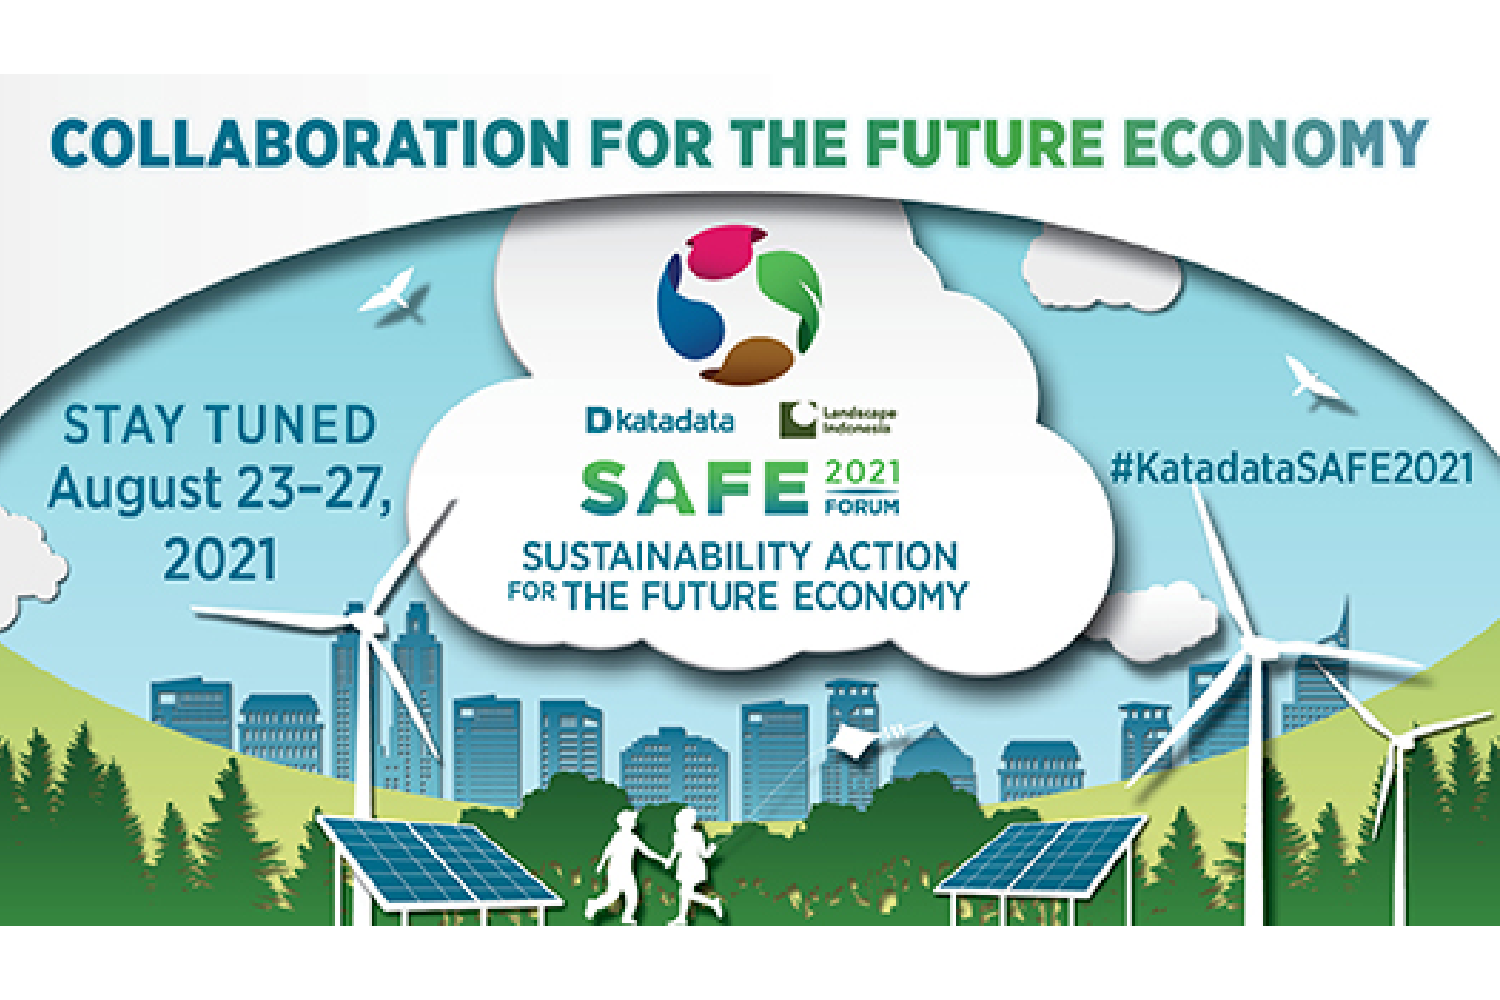 Sustainability Action for the Future Economy 2021